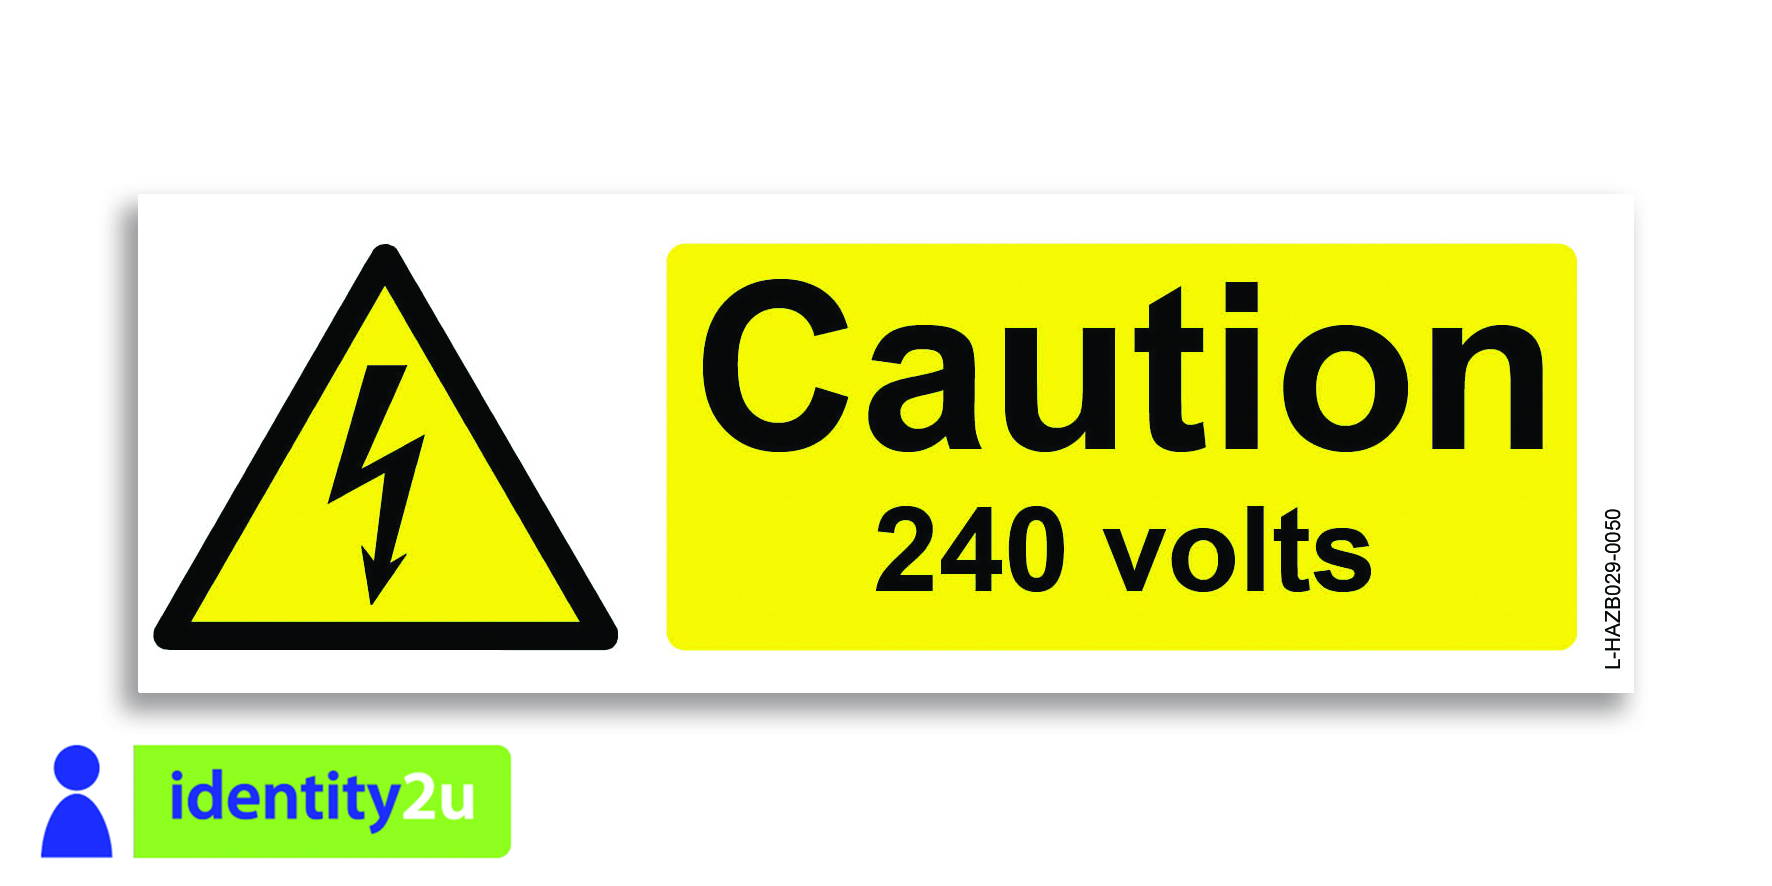 Caution 240 volts 50 Image